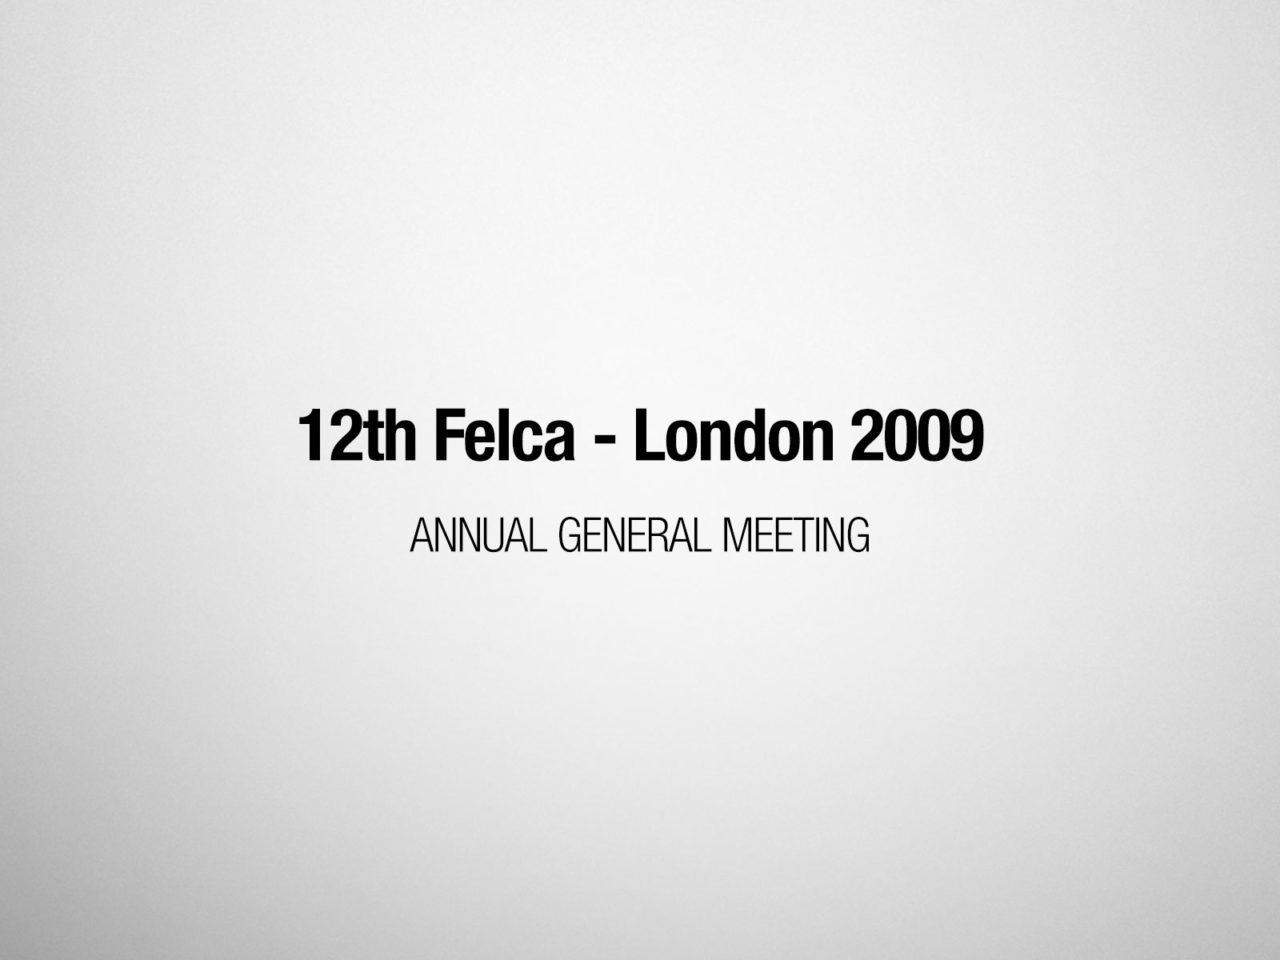 12th Felca Annual General Meeting – London 2009